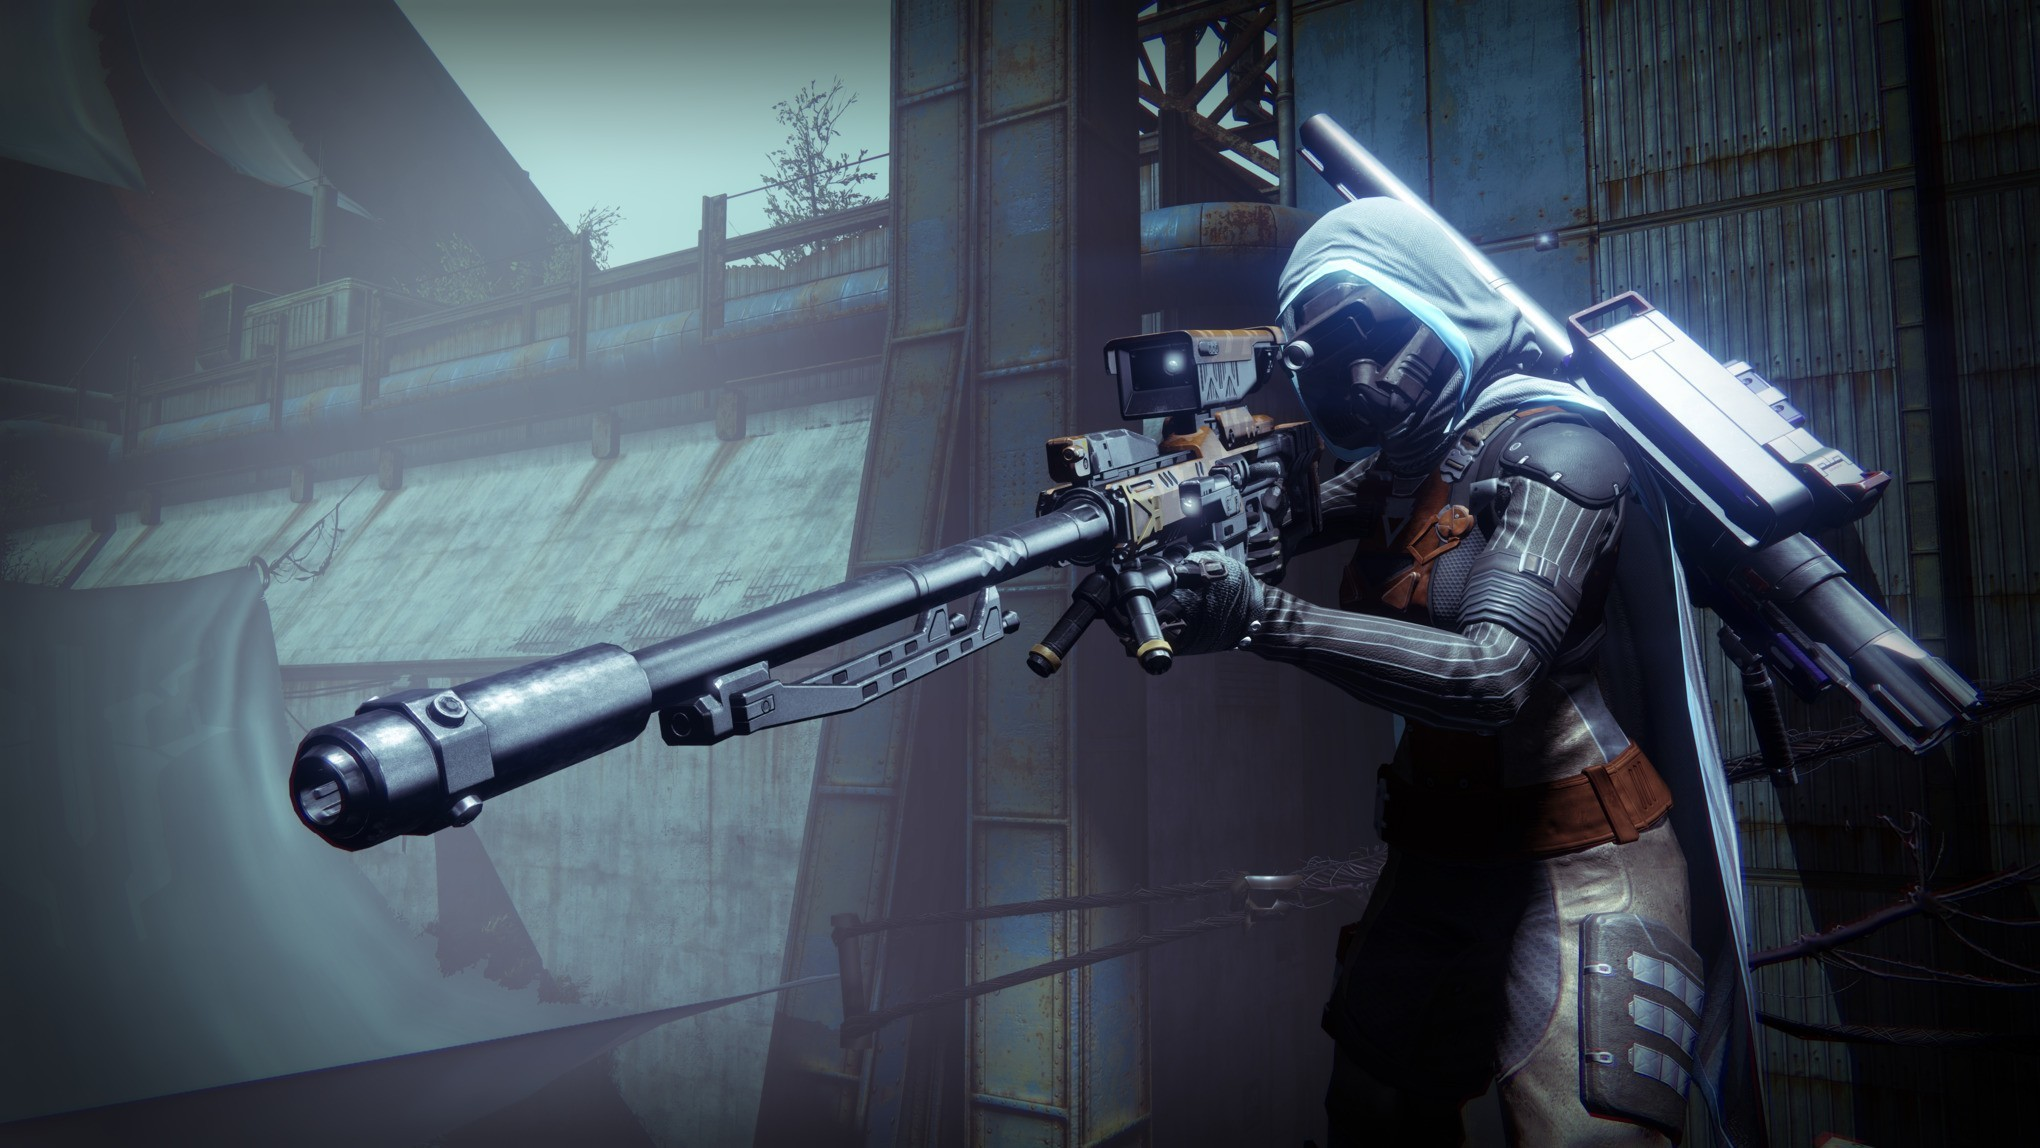 What is Destiny offering that's new and different?